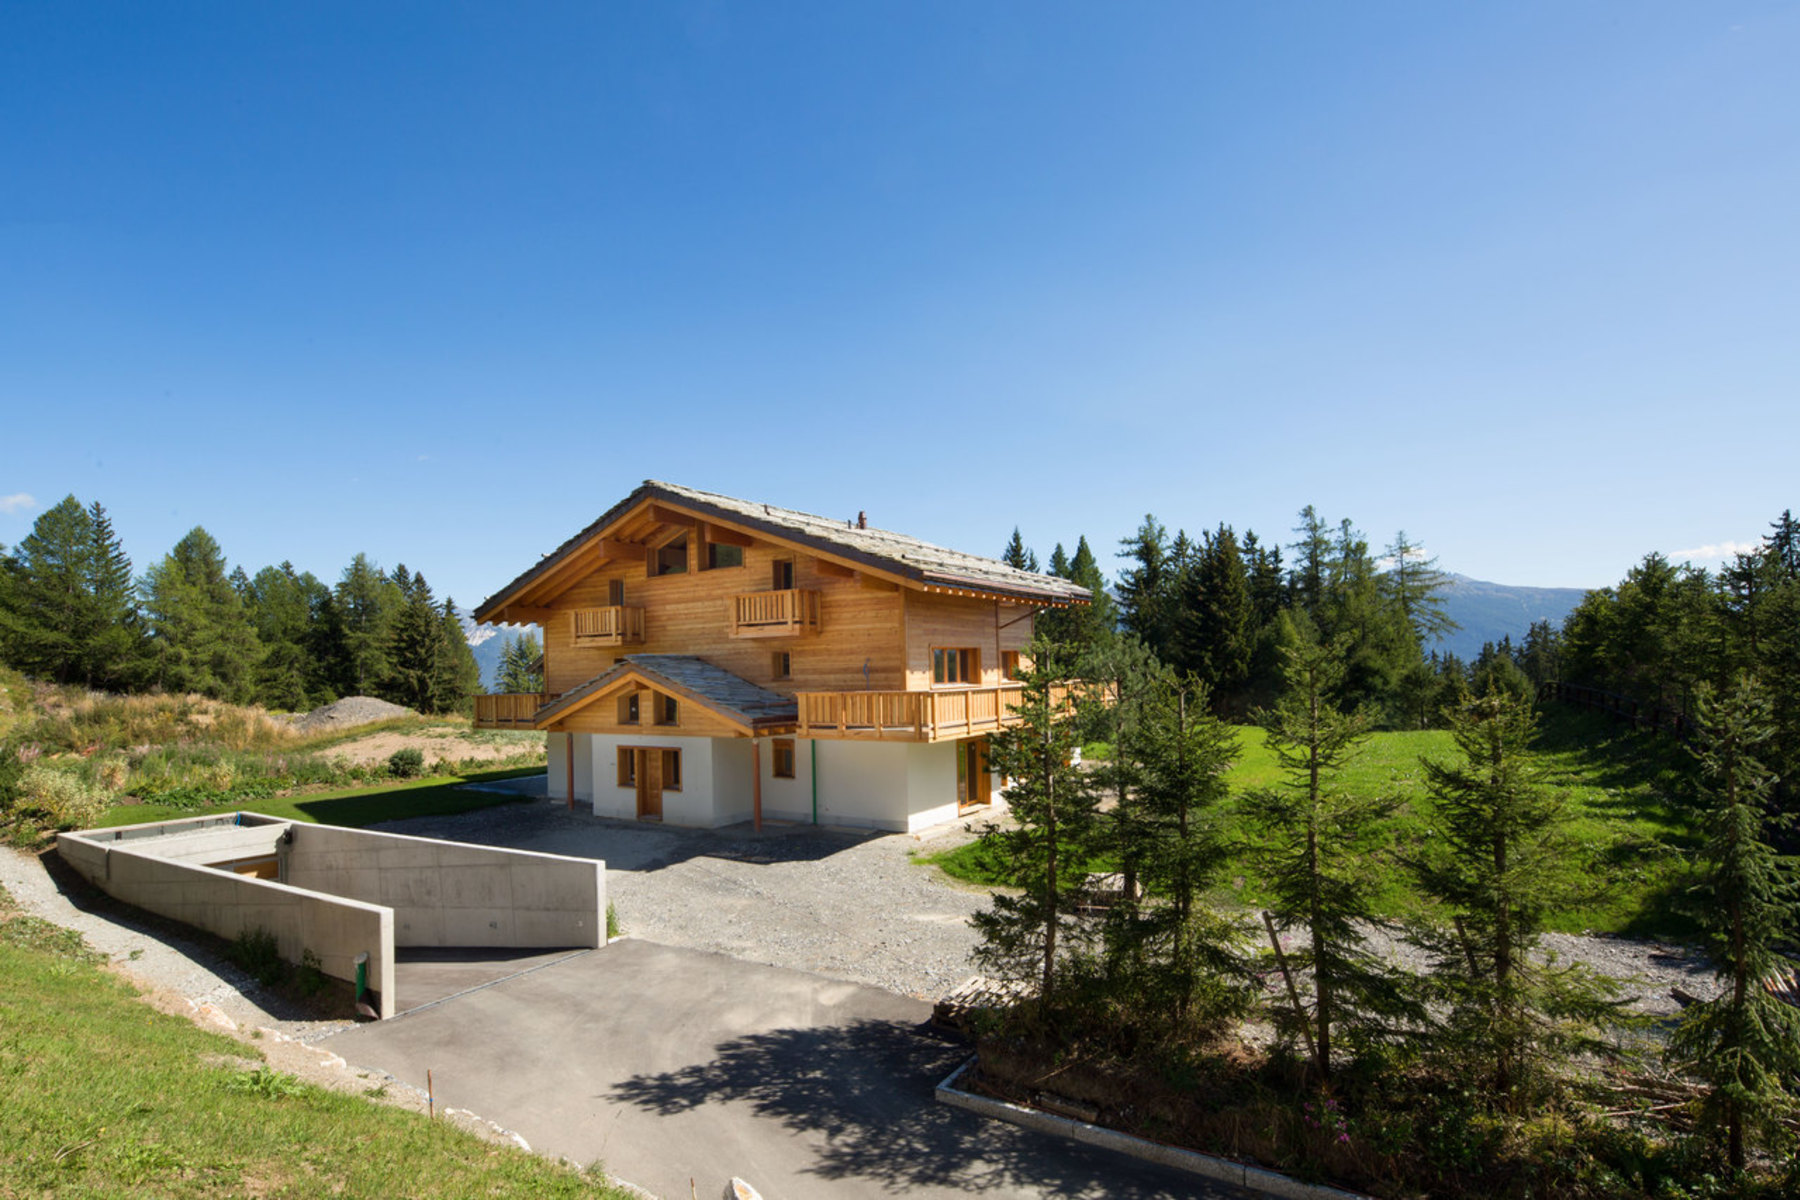 Maison unifamiliale pour l à vendre à Magnificent new chalet in a rural setting in Plans-Mayens Crans-Montana, Crans, Valais, 3963 Suisse